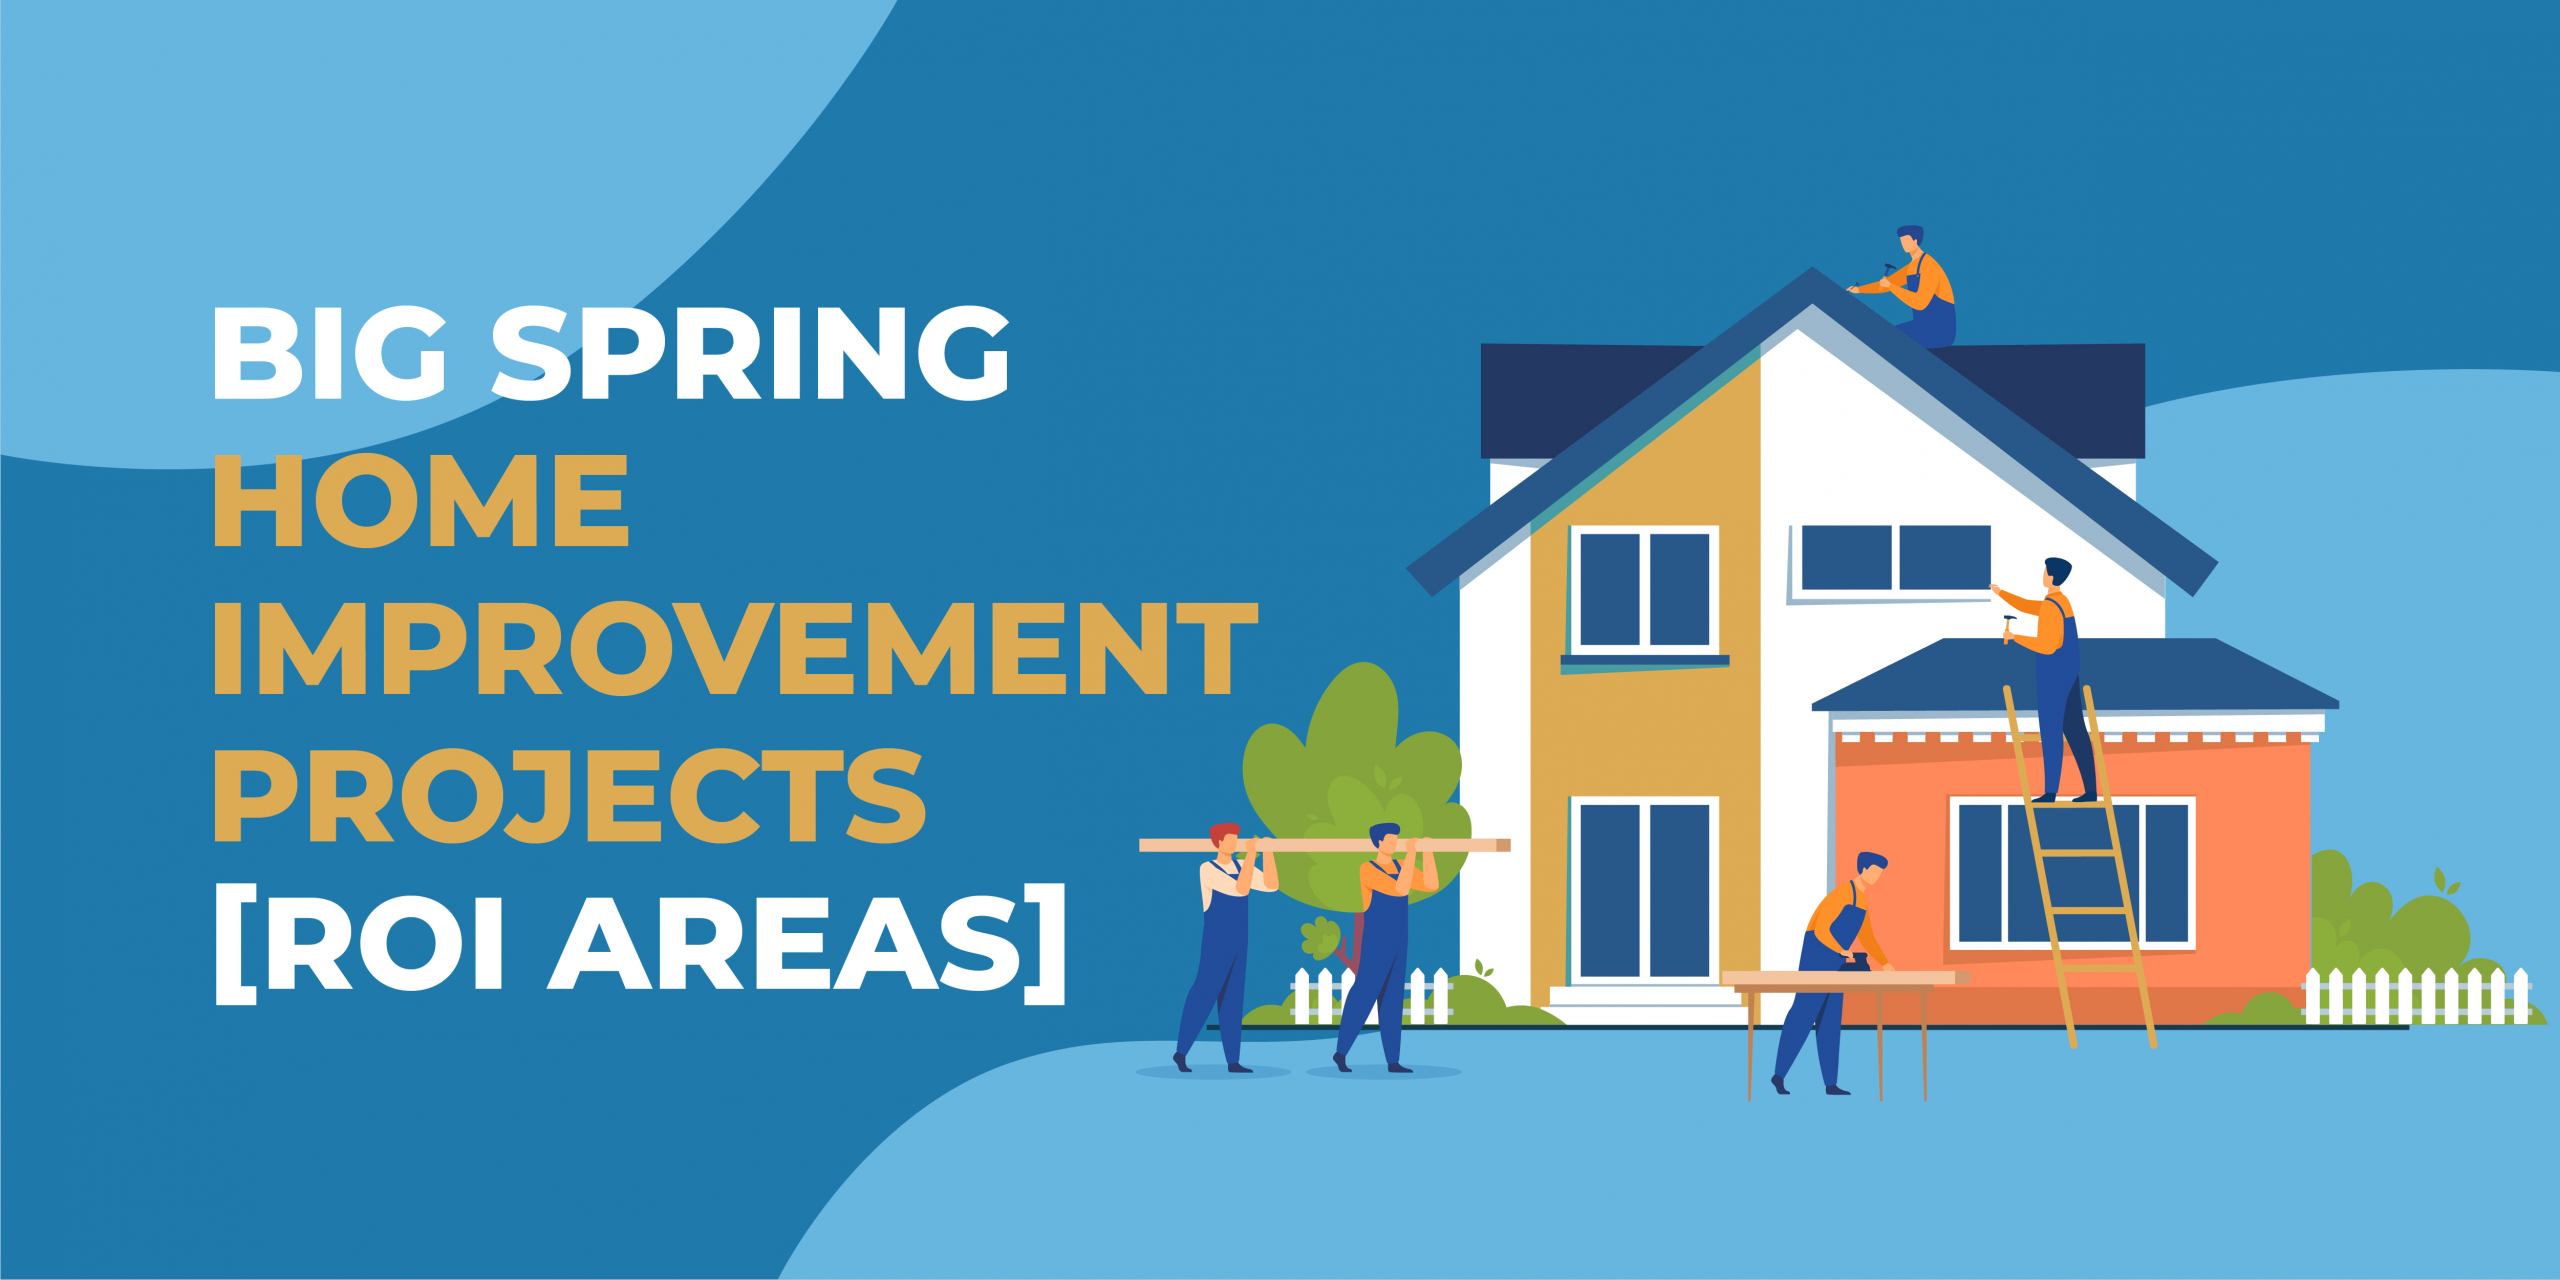 Big Spring Home Improvement Projects